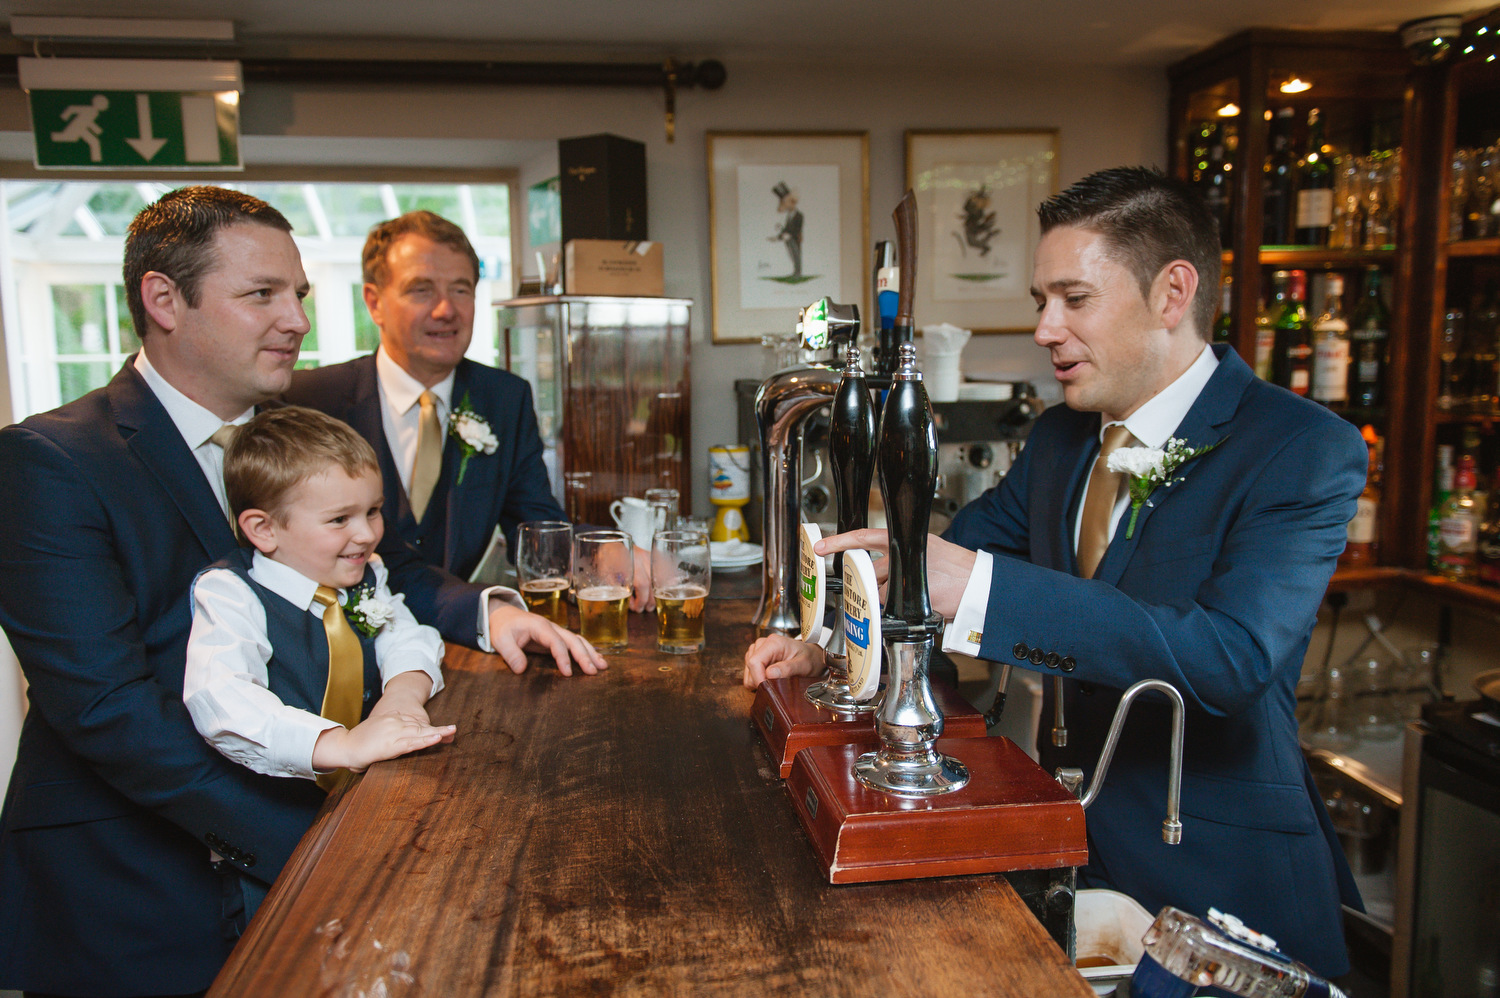 charnwood_weddings_barnsdale_lodge_rutland_dave_j98ane.JPG